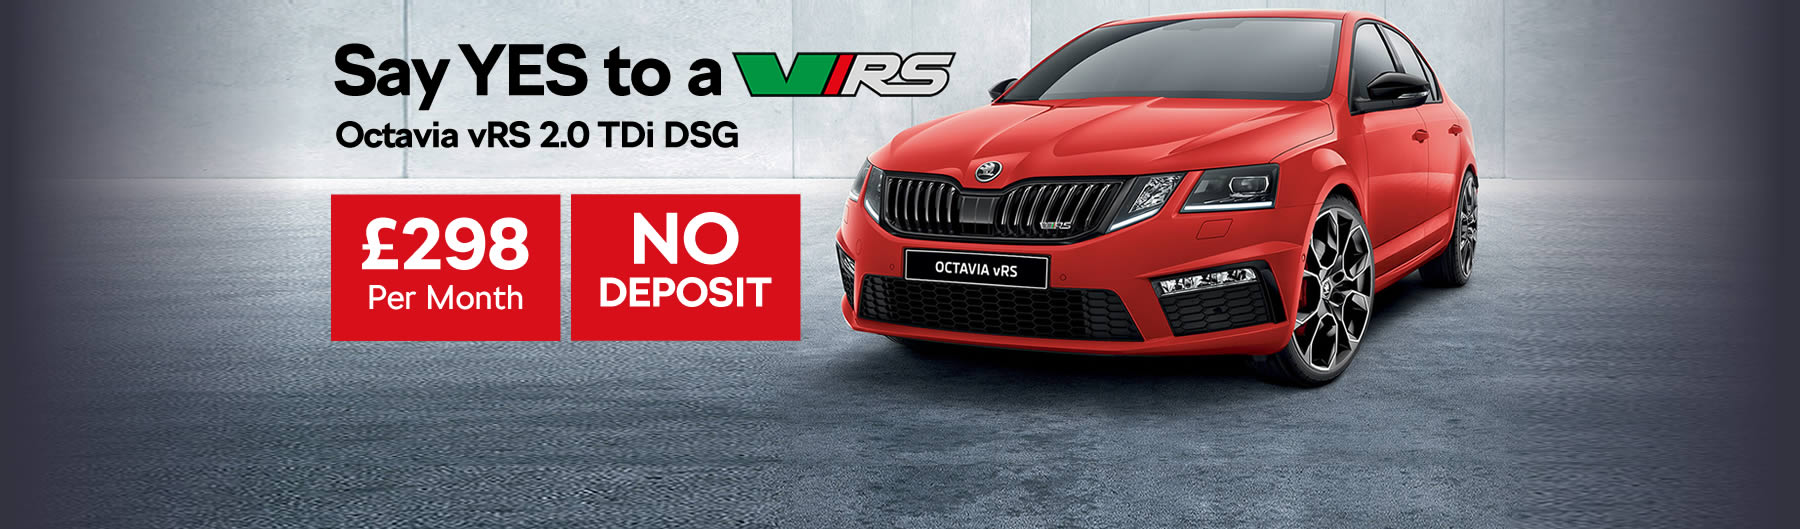 Say YES to a vRS